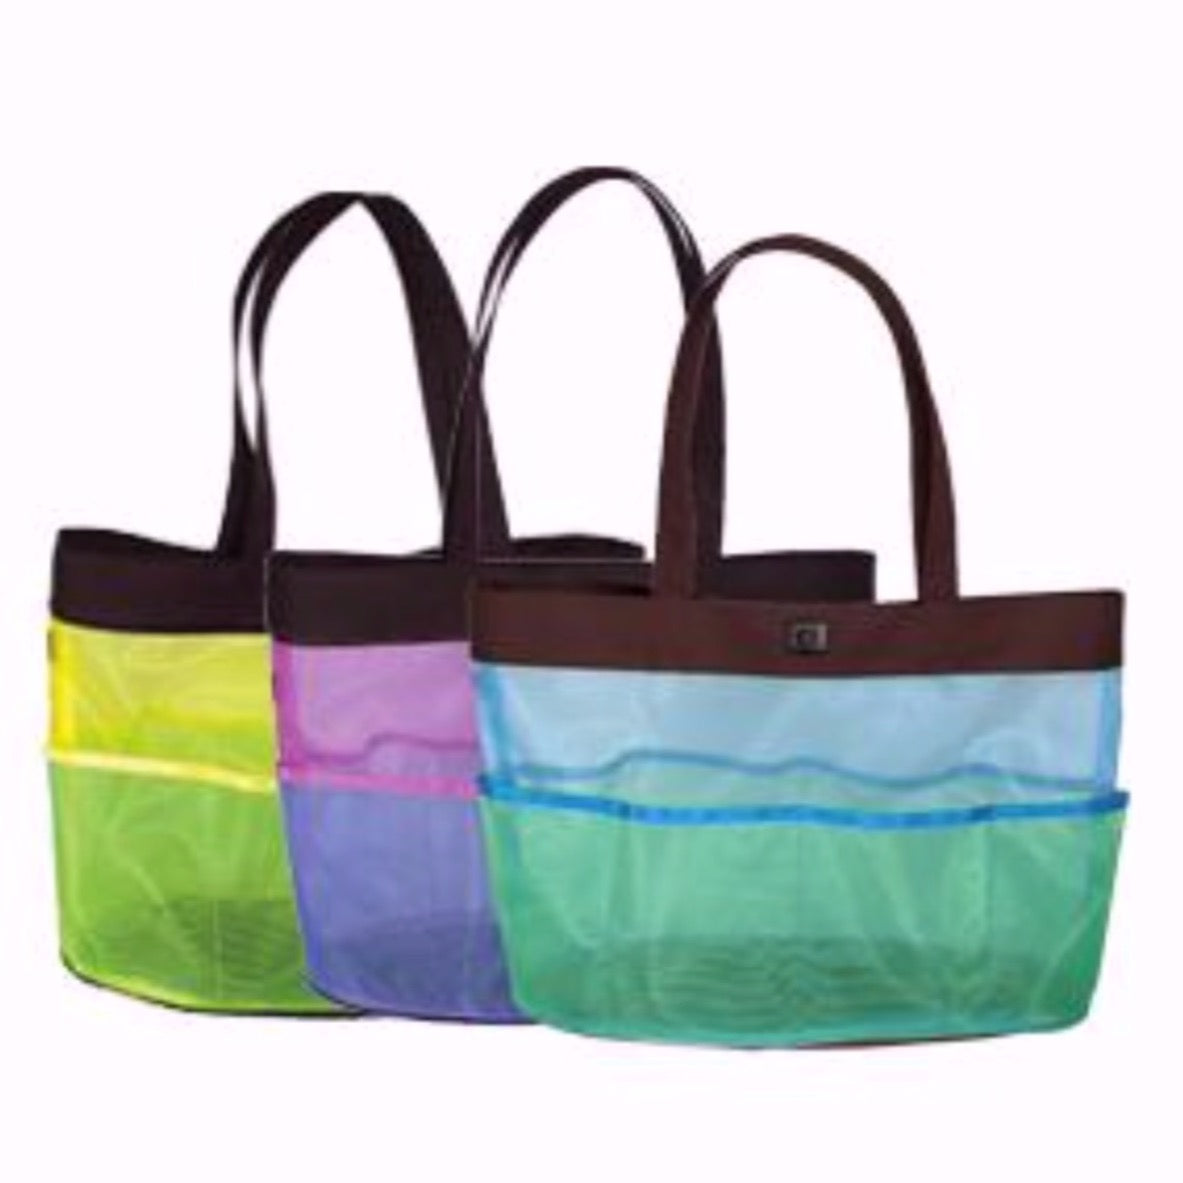 Duck & Mesh Utility Tote w/6 Pockets